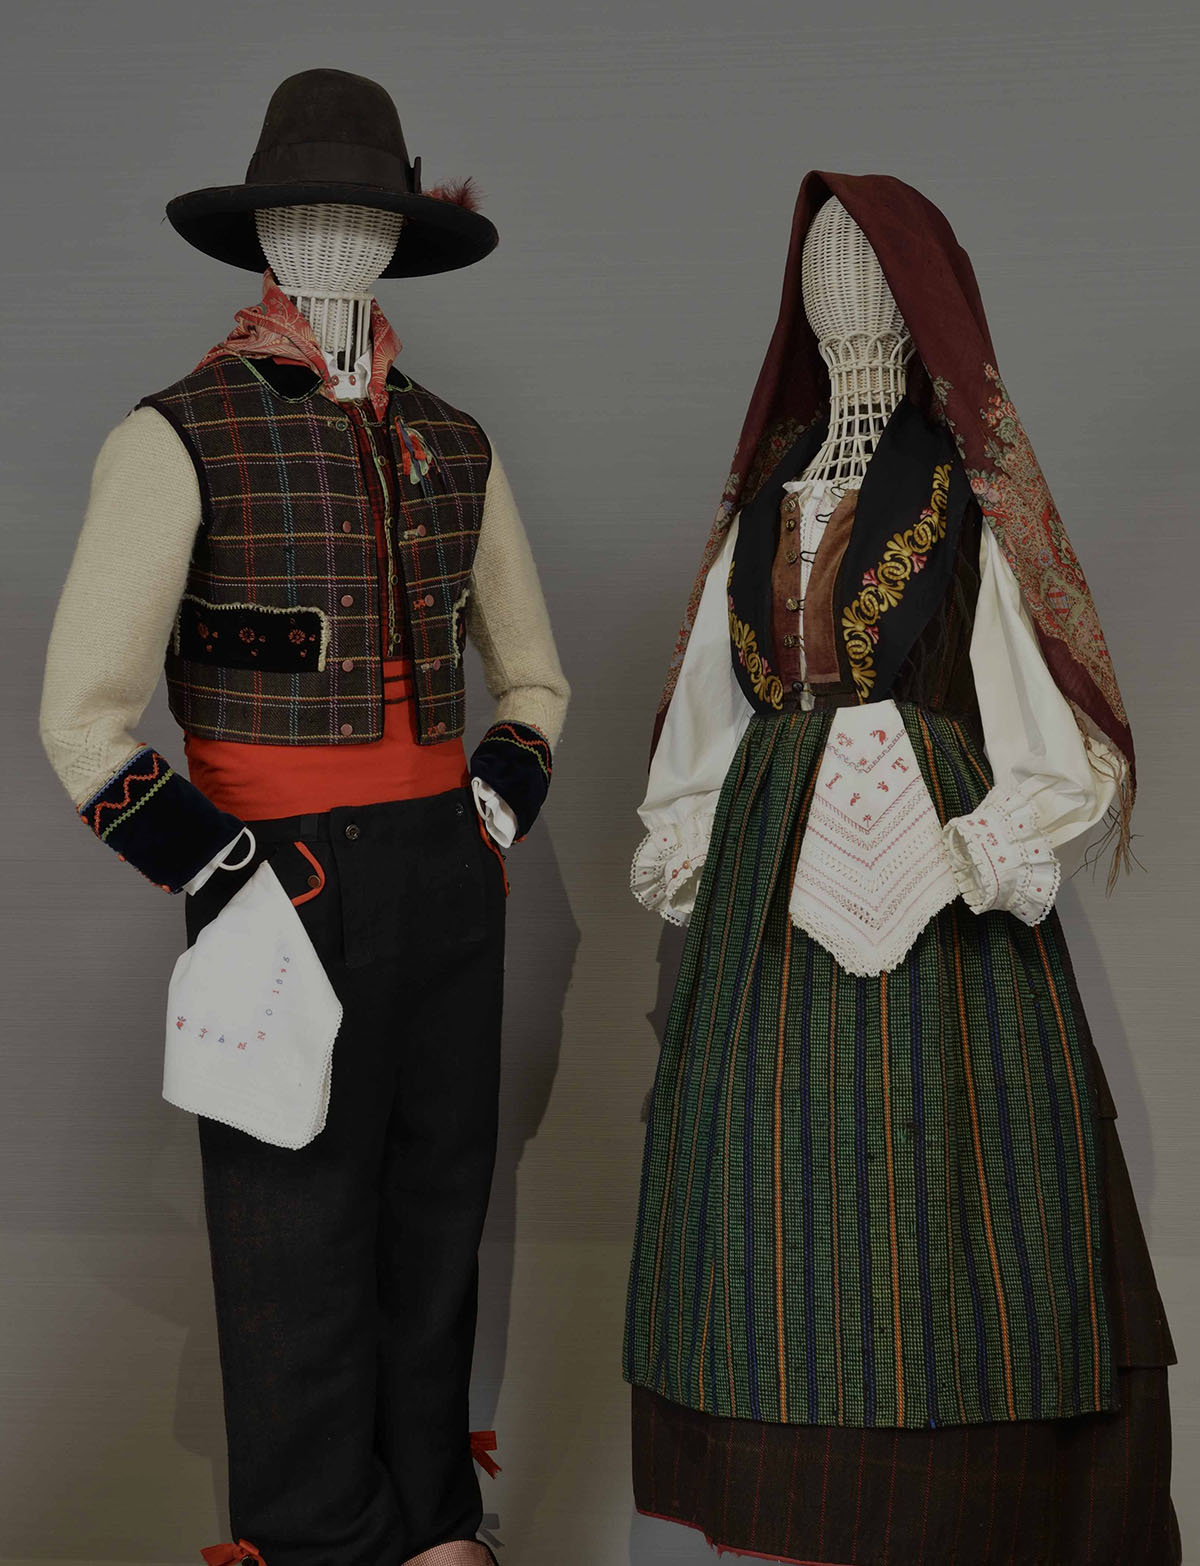 Nineteenth-century folk costumes - Aviano